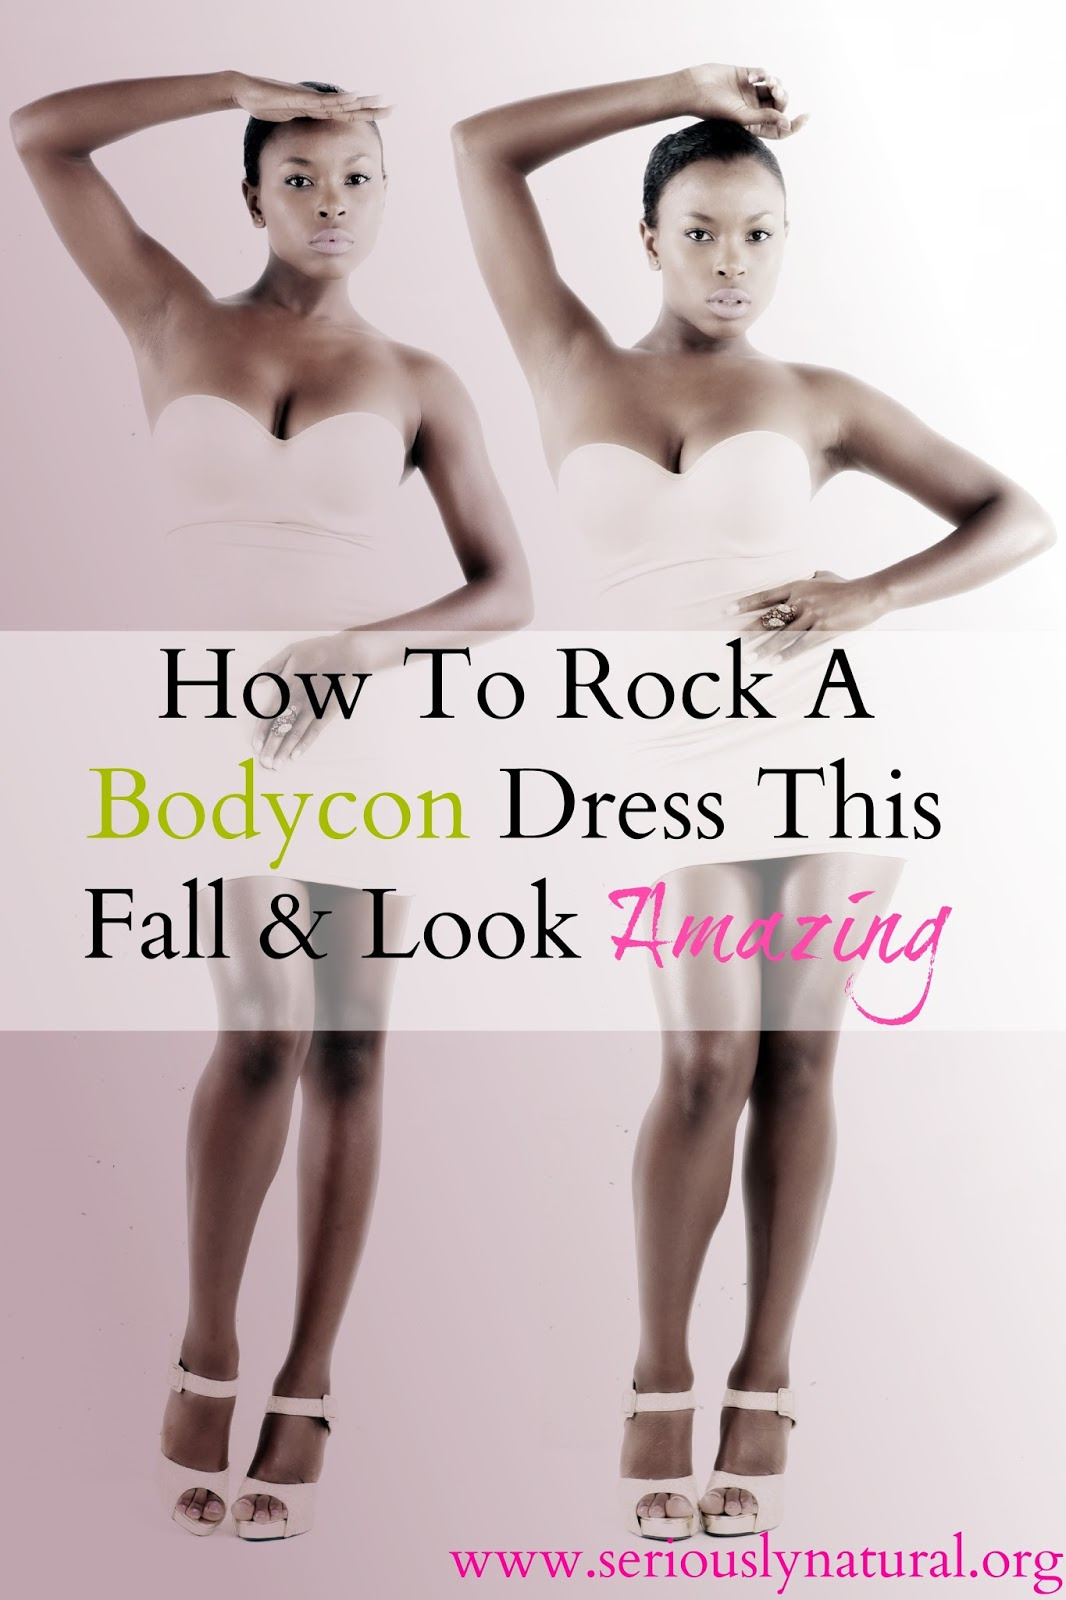 Fall fashion is upon us and for any woman who wants to rock a sexy bodycon dress, we've got the tips and tricks to do it right and look sexy as hell!